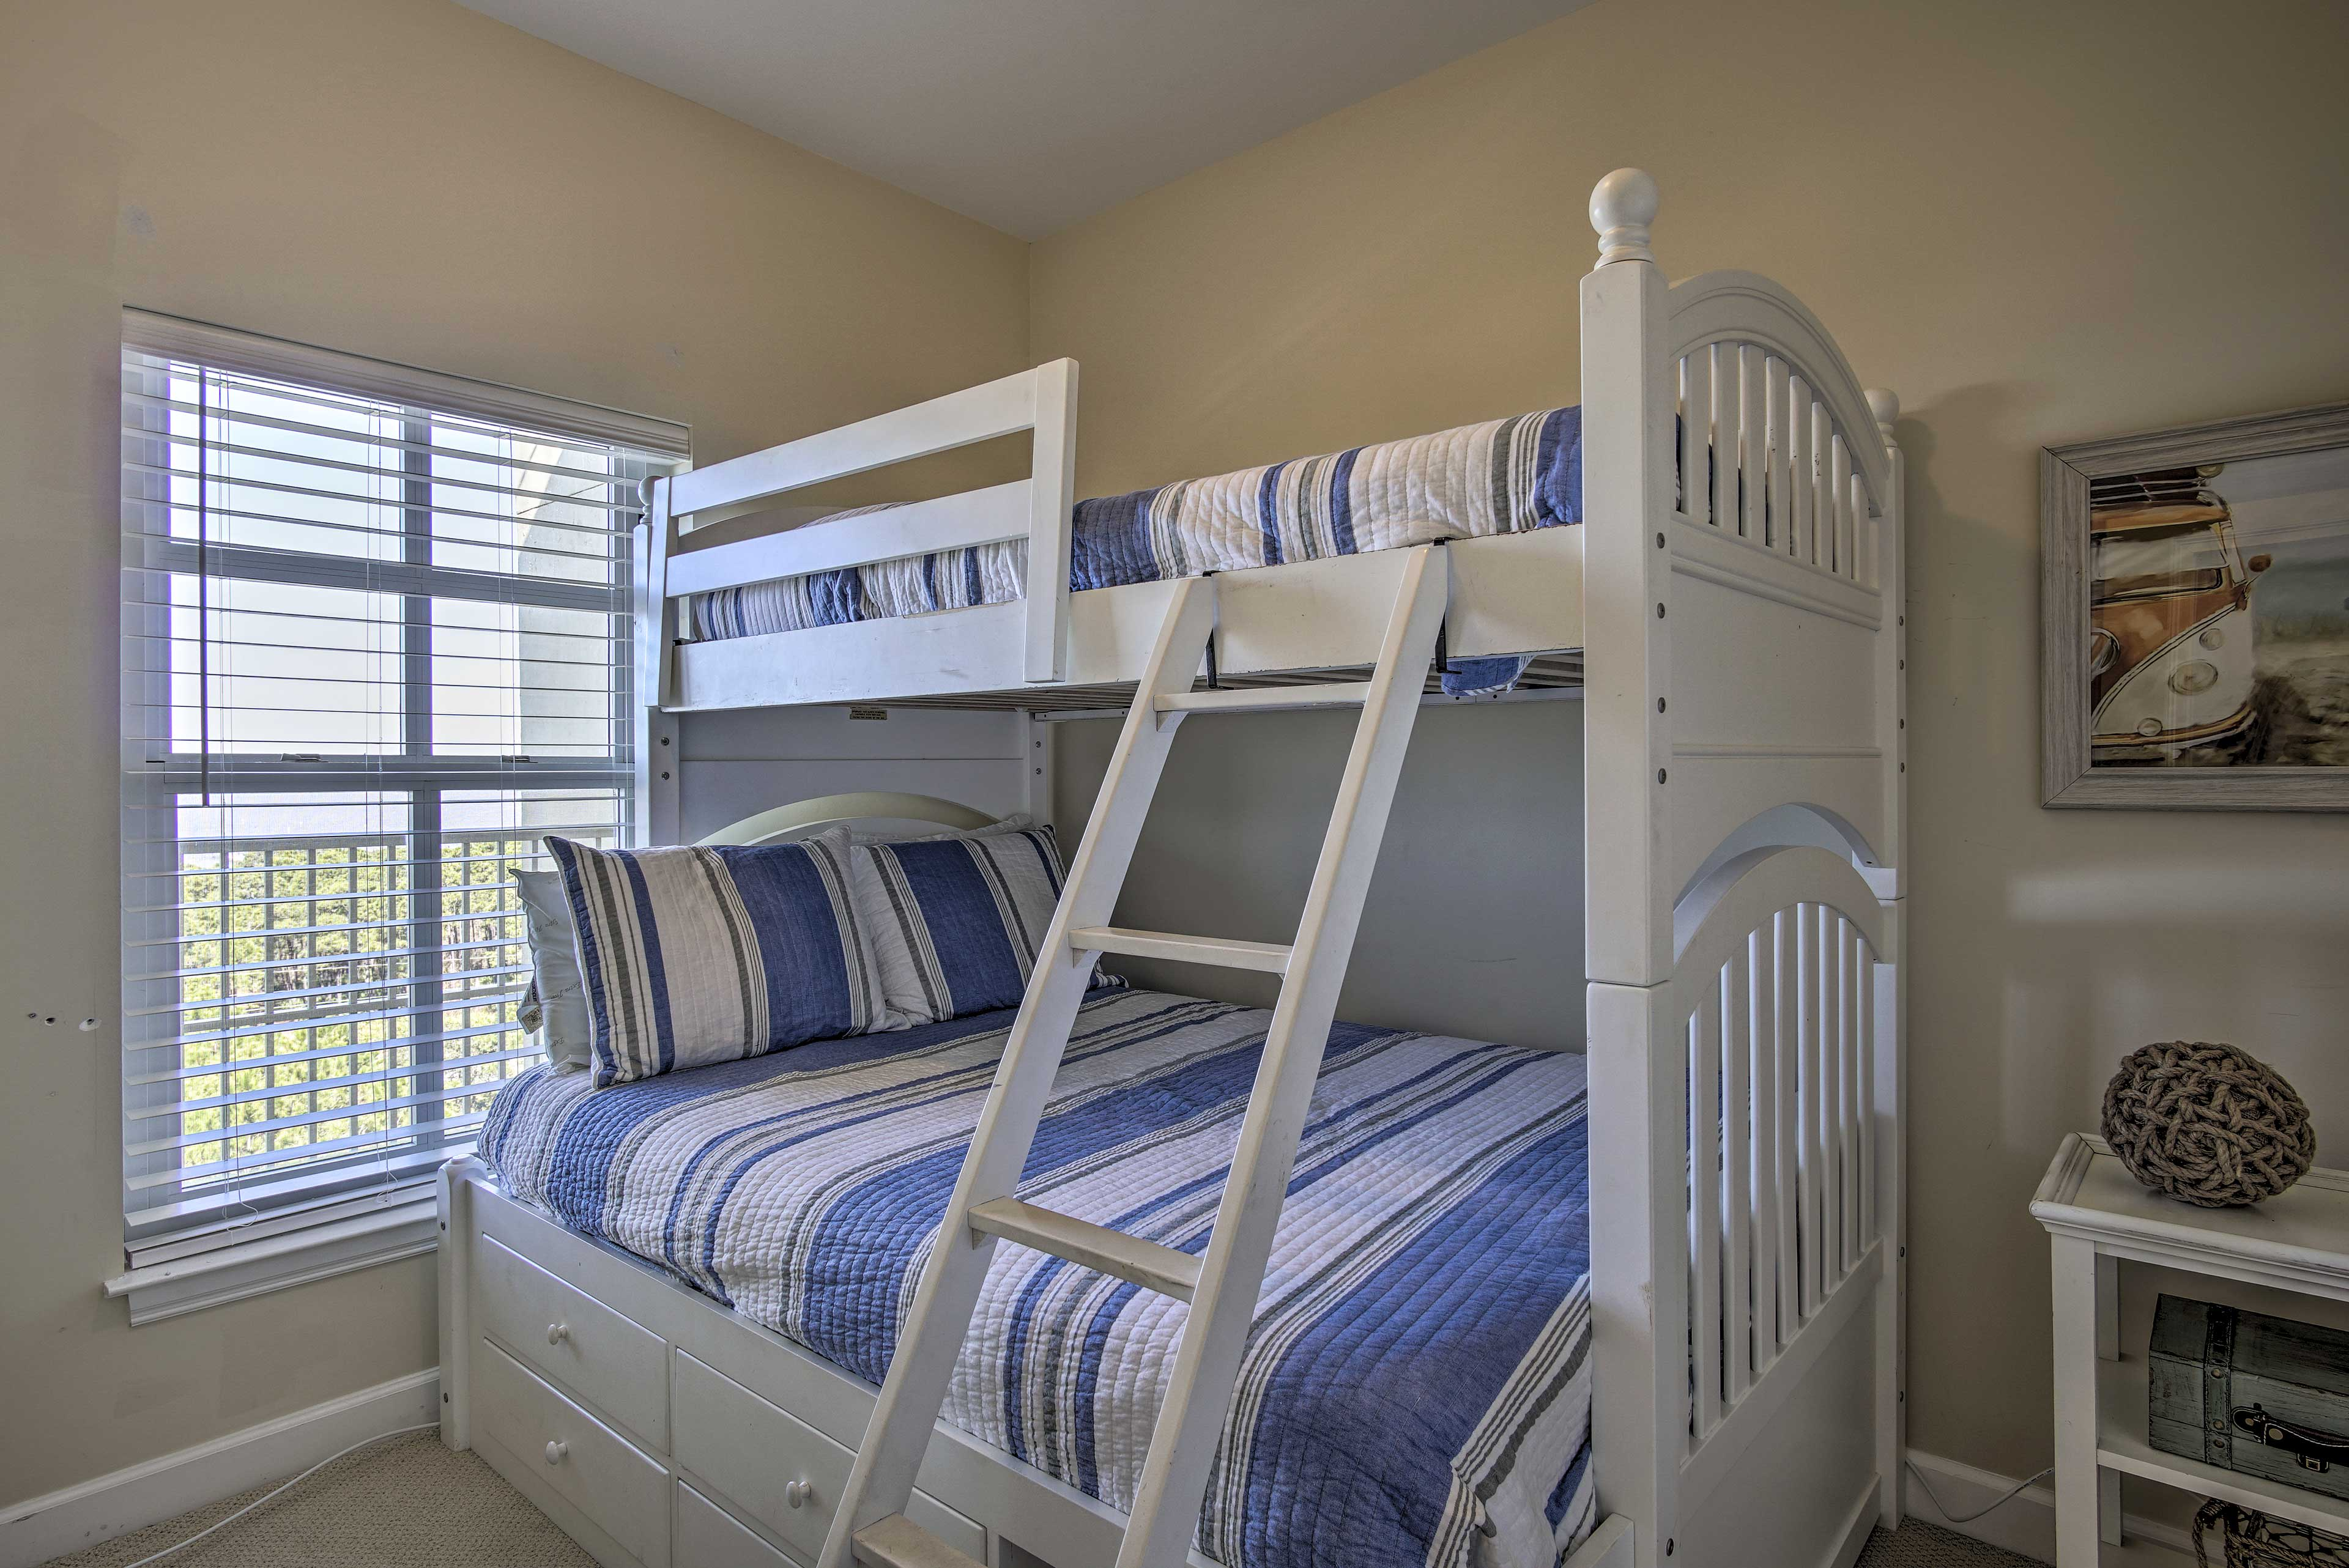 Perfect for kids, this room sleeps 3 in a twin-over-full bunk bed.